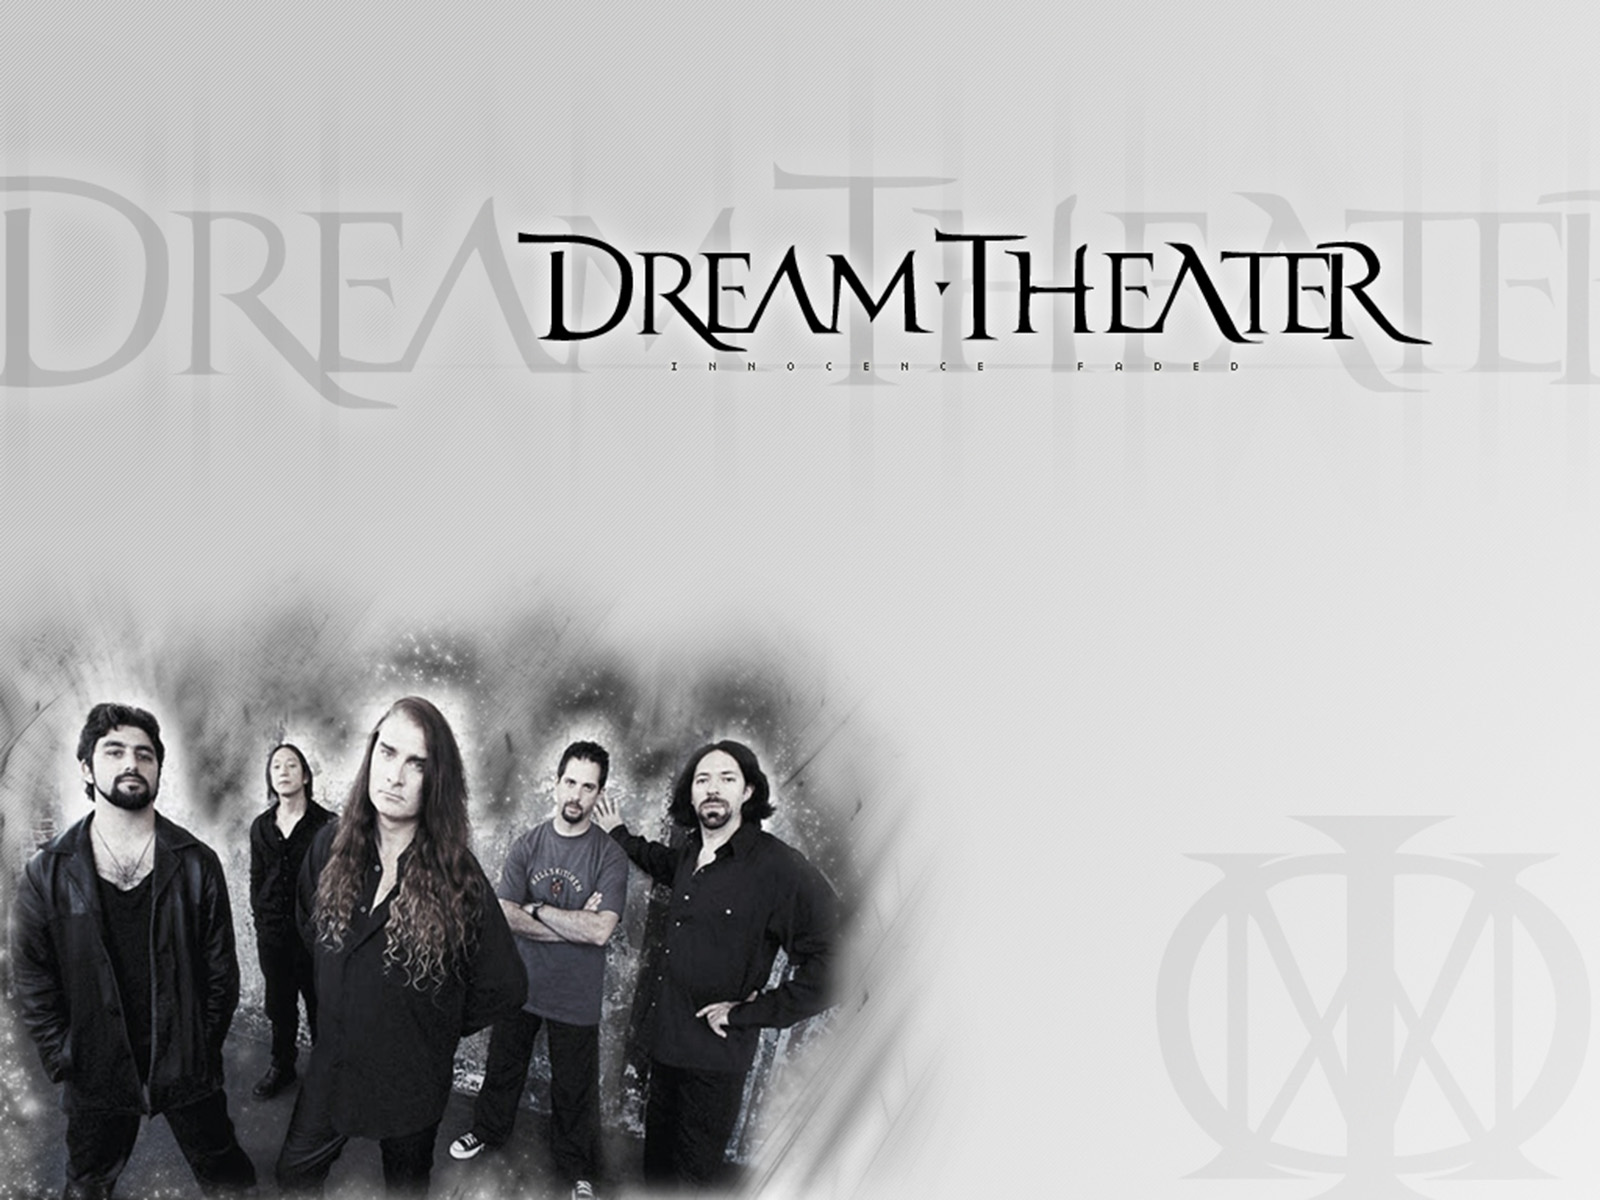 Dream_Theater_11_1600x1200.jpg